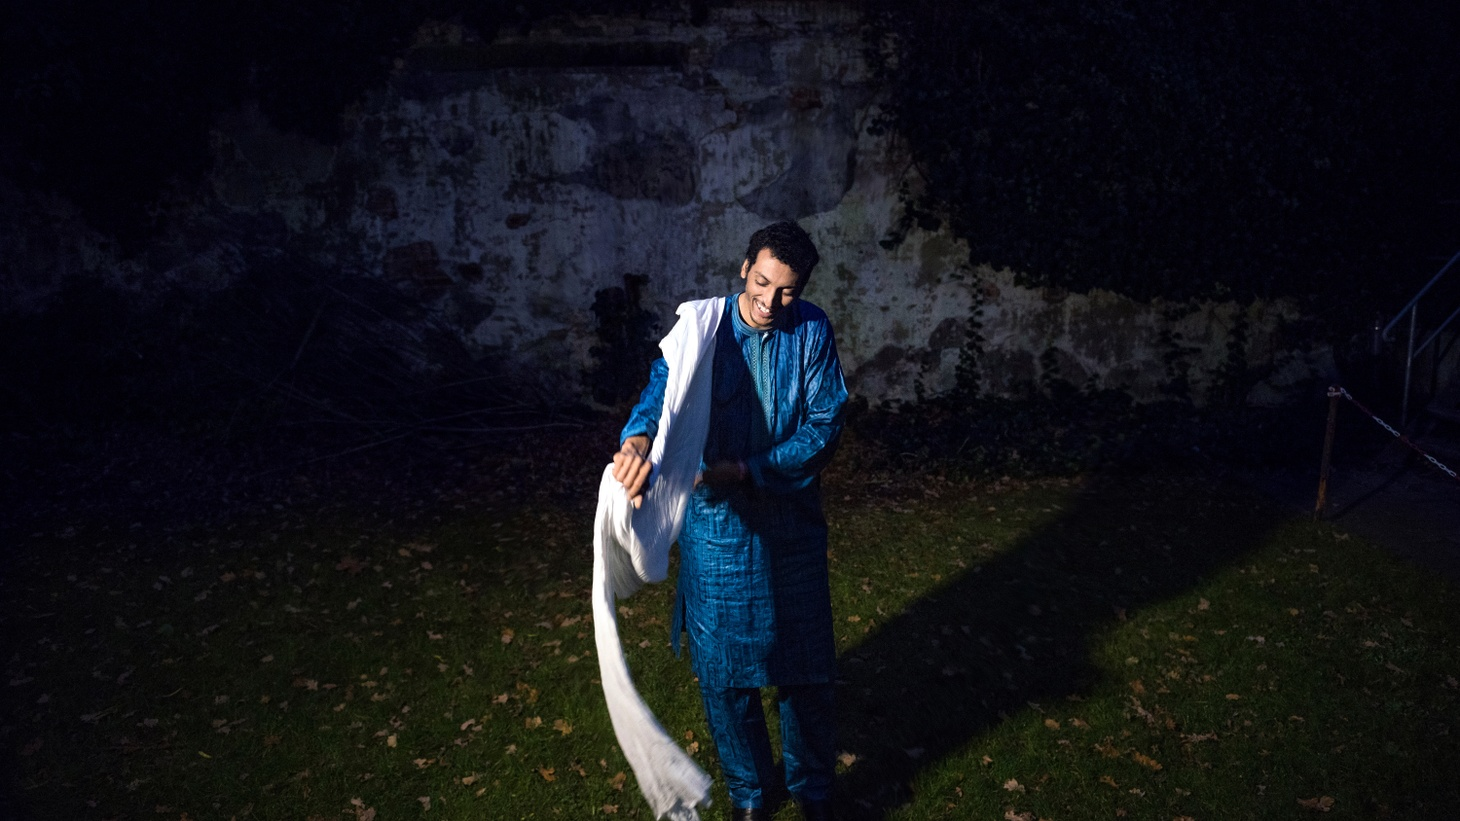 """Desert rock guitarist Bombino wrote the song """"Akhar Zaman"""" as his missive to his fellow nomadic Tuareg people to remember their culture and identity in this modern world."""